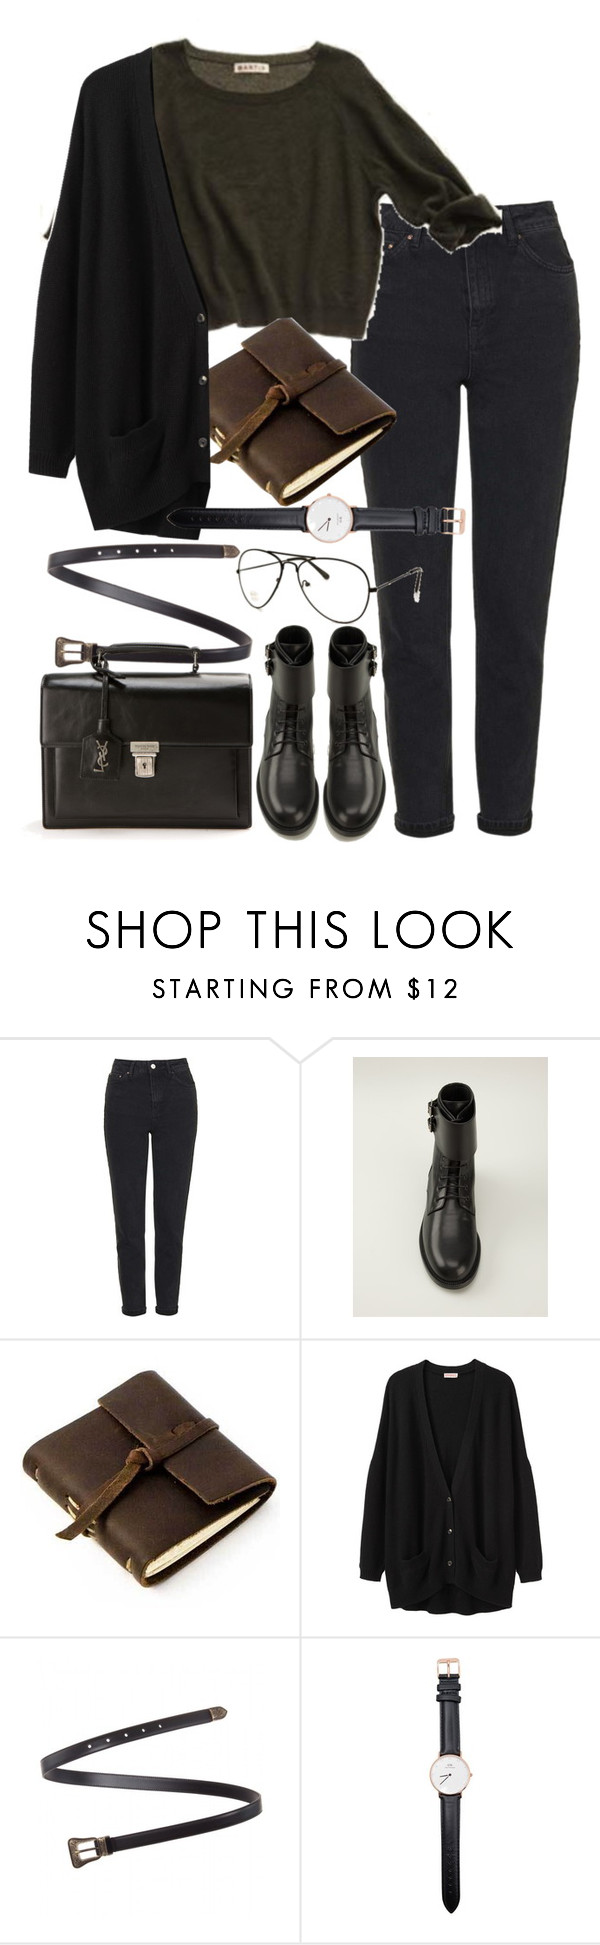 """""""Untitled #8633"""" by nikka-phillips ❤ liked on Polyvore featuring Topshop, Yves Saint Laurent, Rustico, Organic by John Patrick, Daniel Wellington, women's clothing, women, female, woman and misses"""